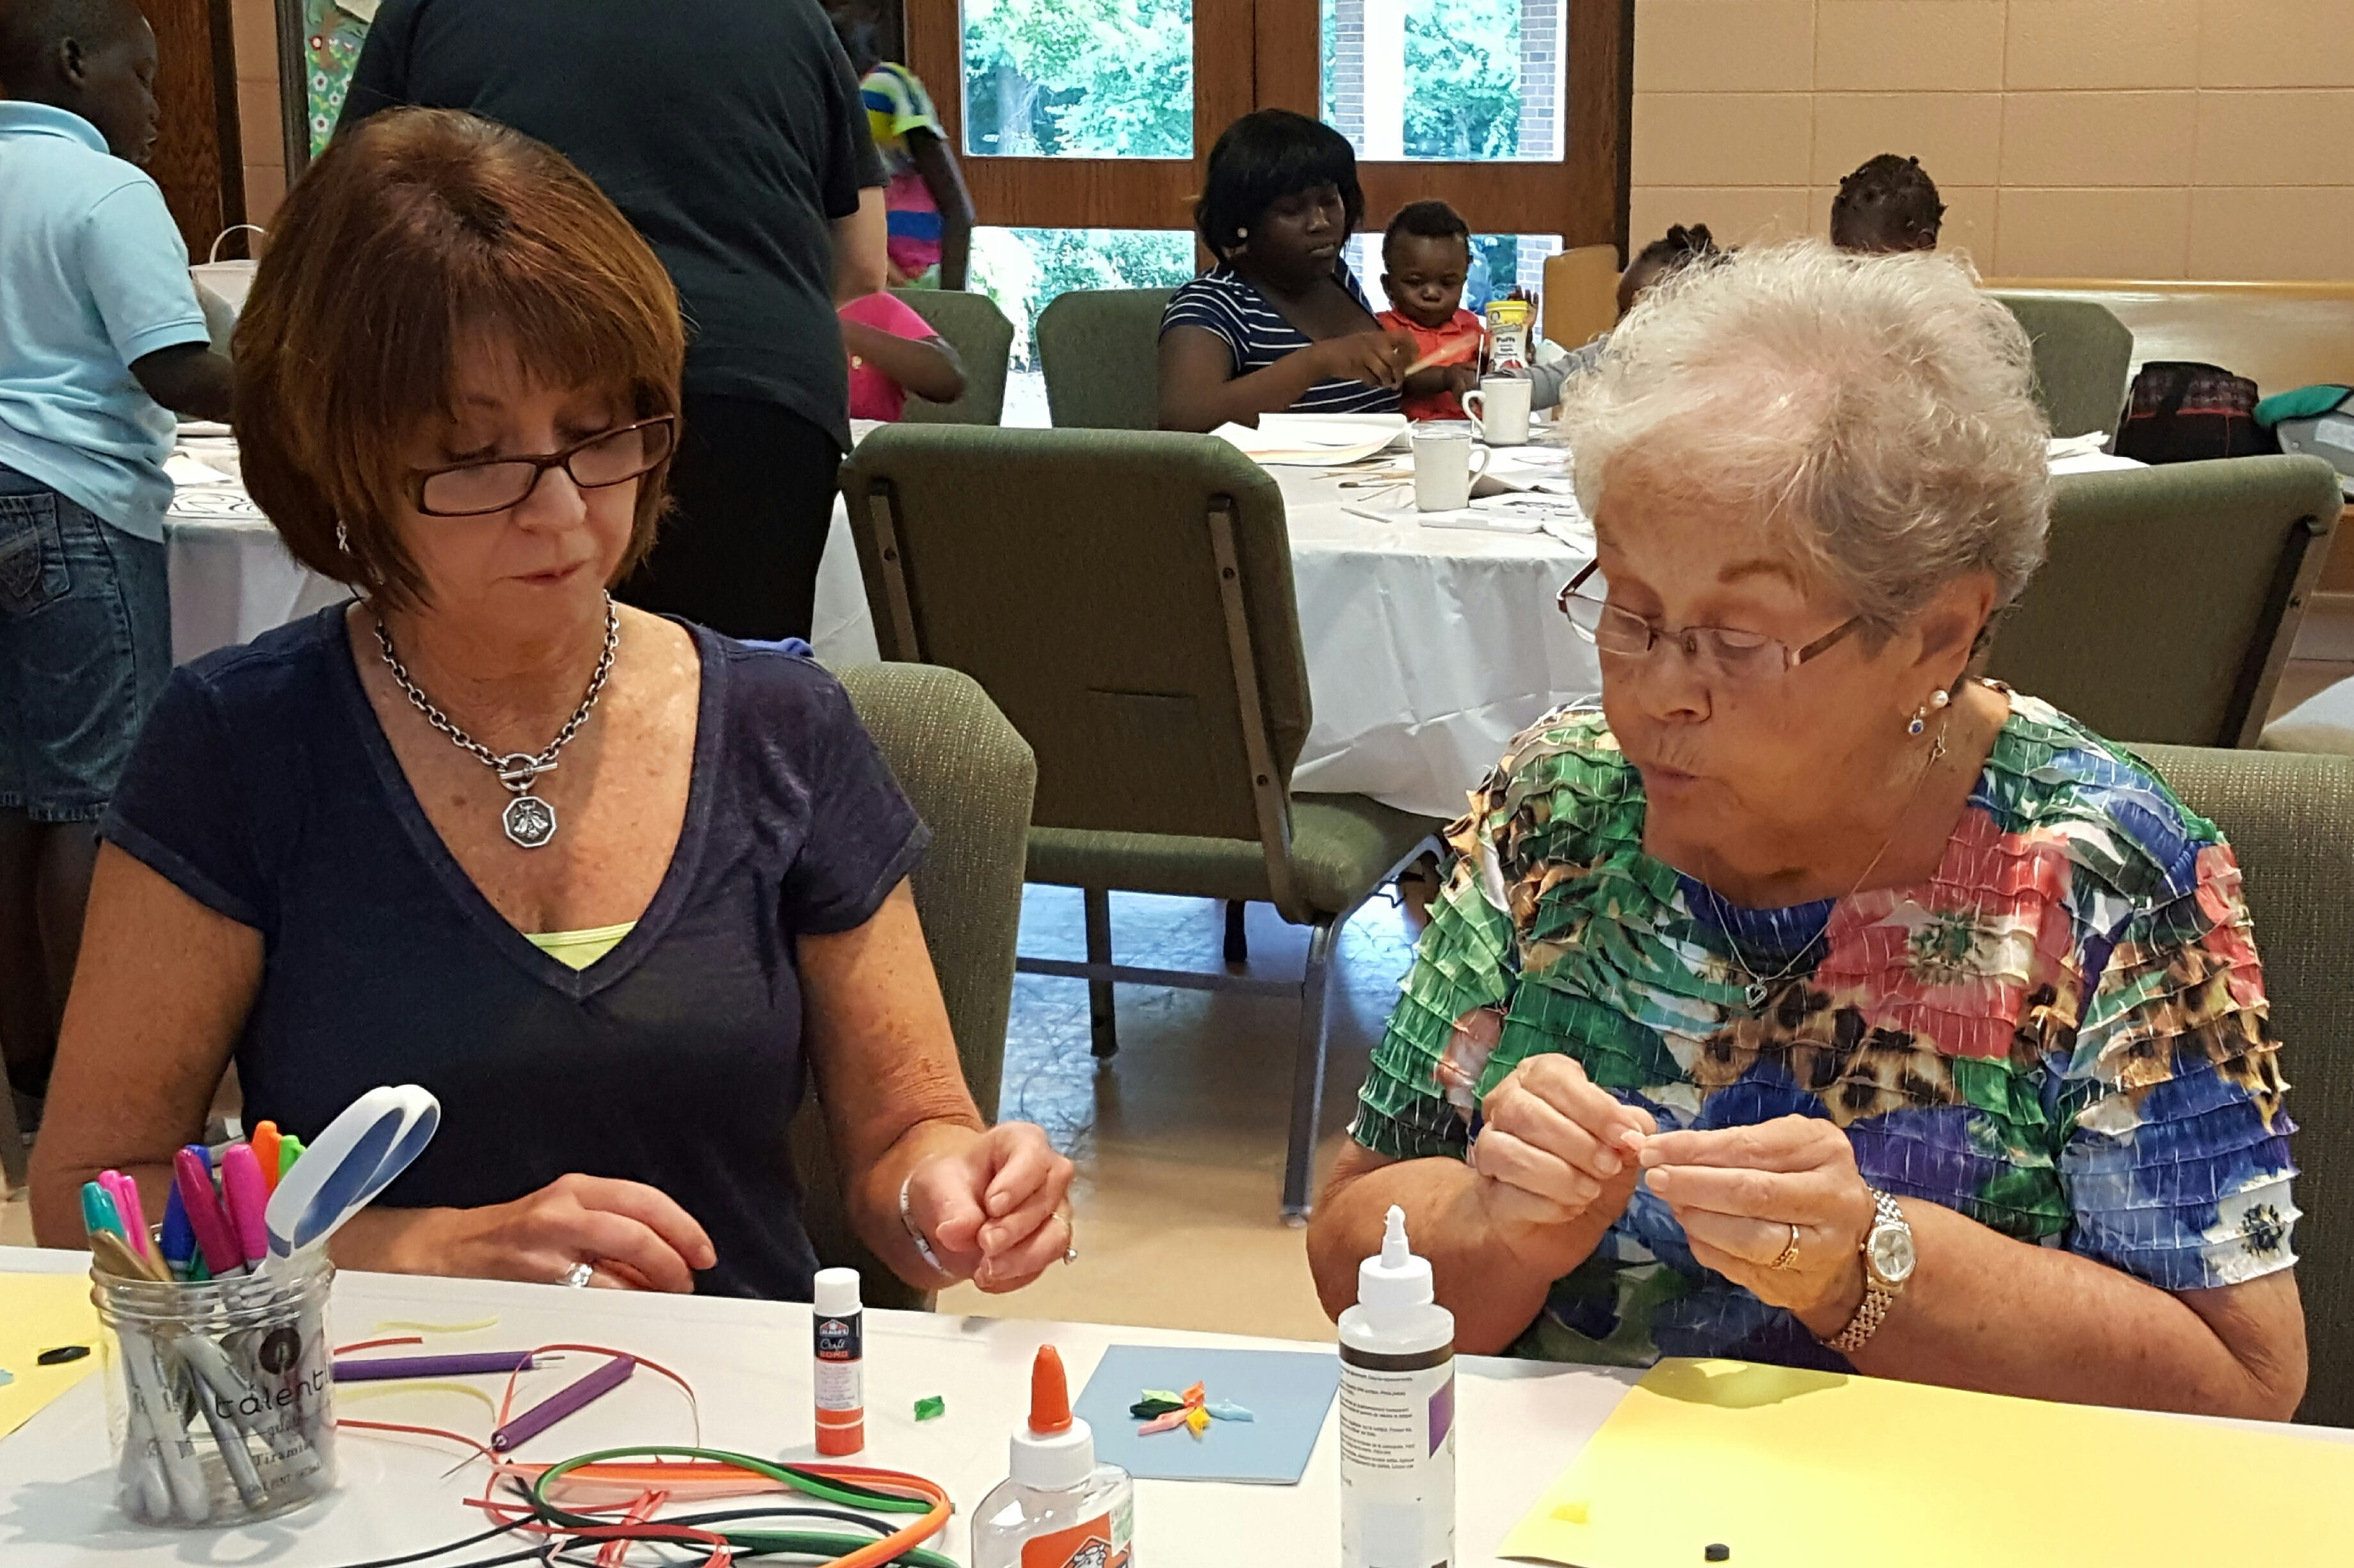 Betzy and Terri learning to quill paper